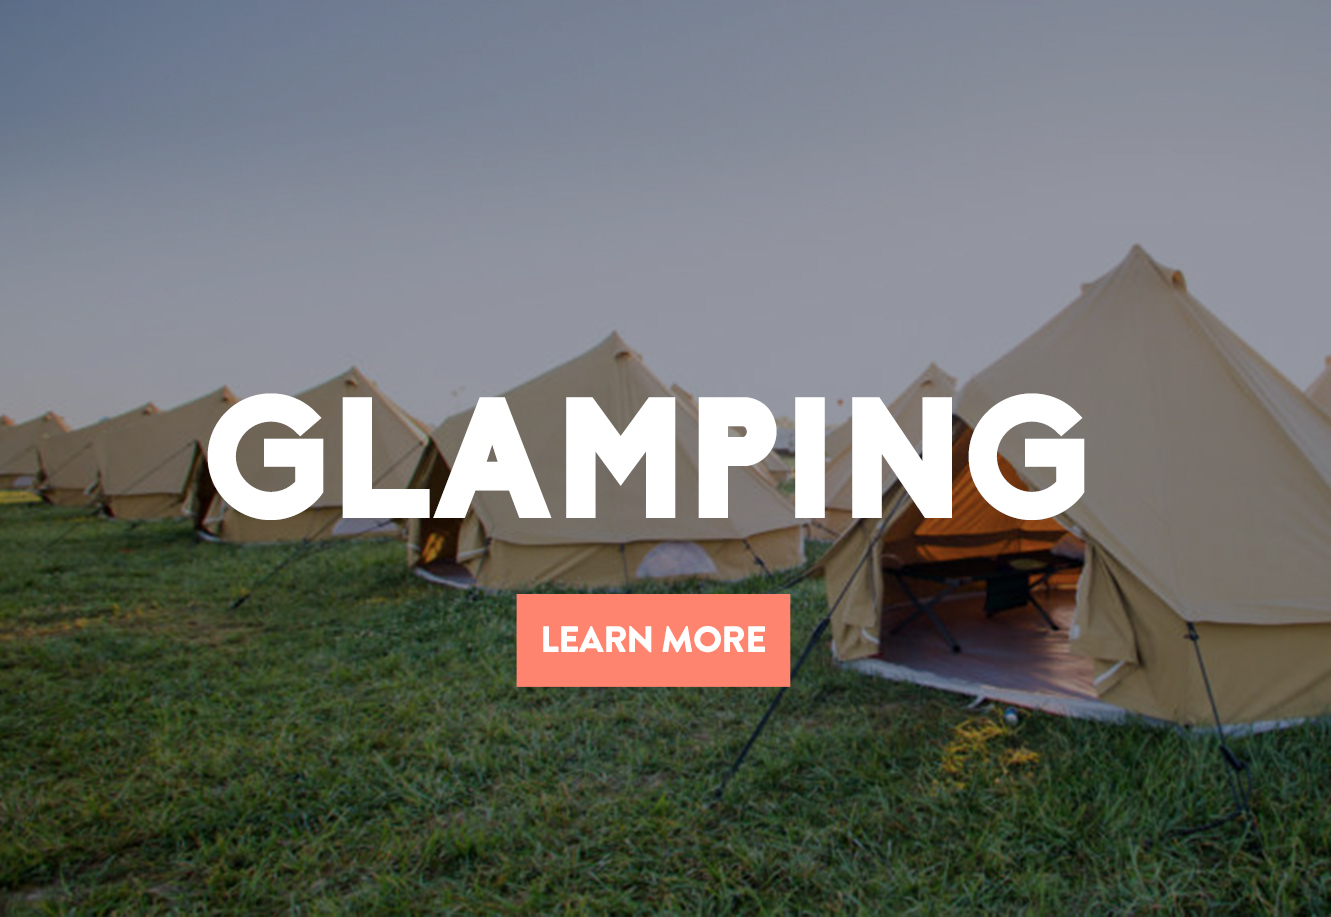 TEMPLATE_Lodging - Glamping.jpg